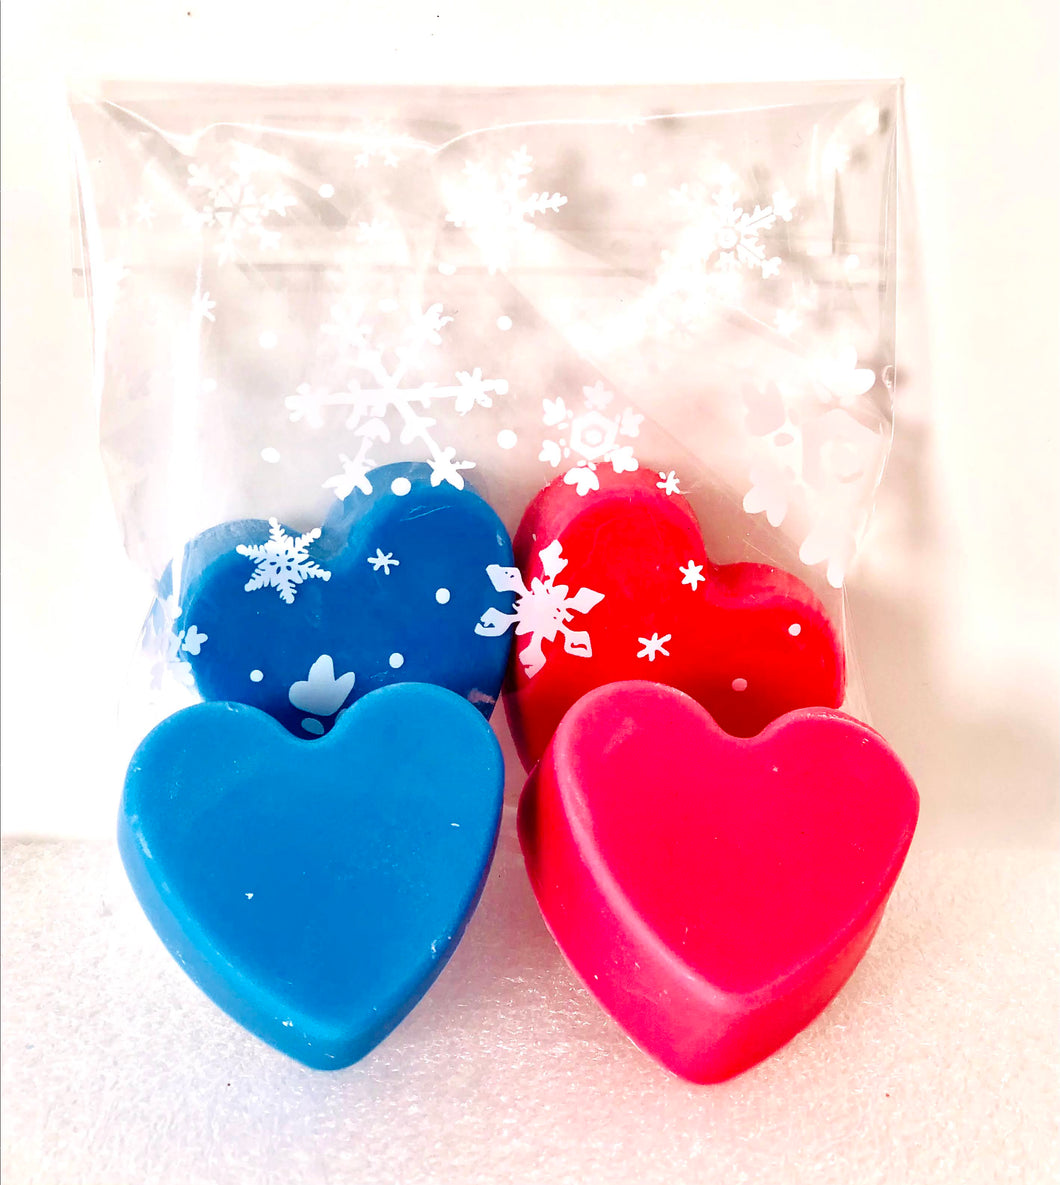 Wax Melts Heart to Heart collection-in pairs